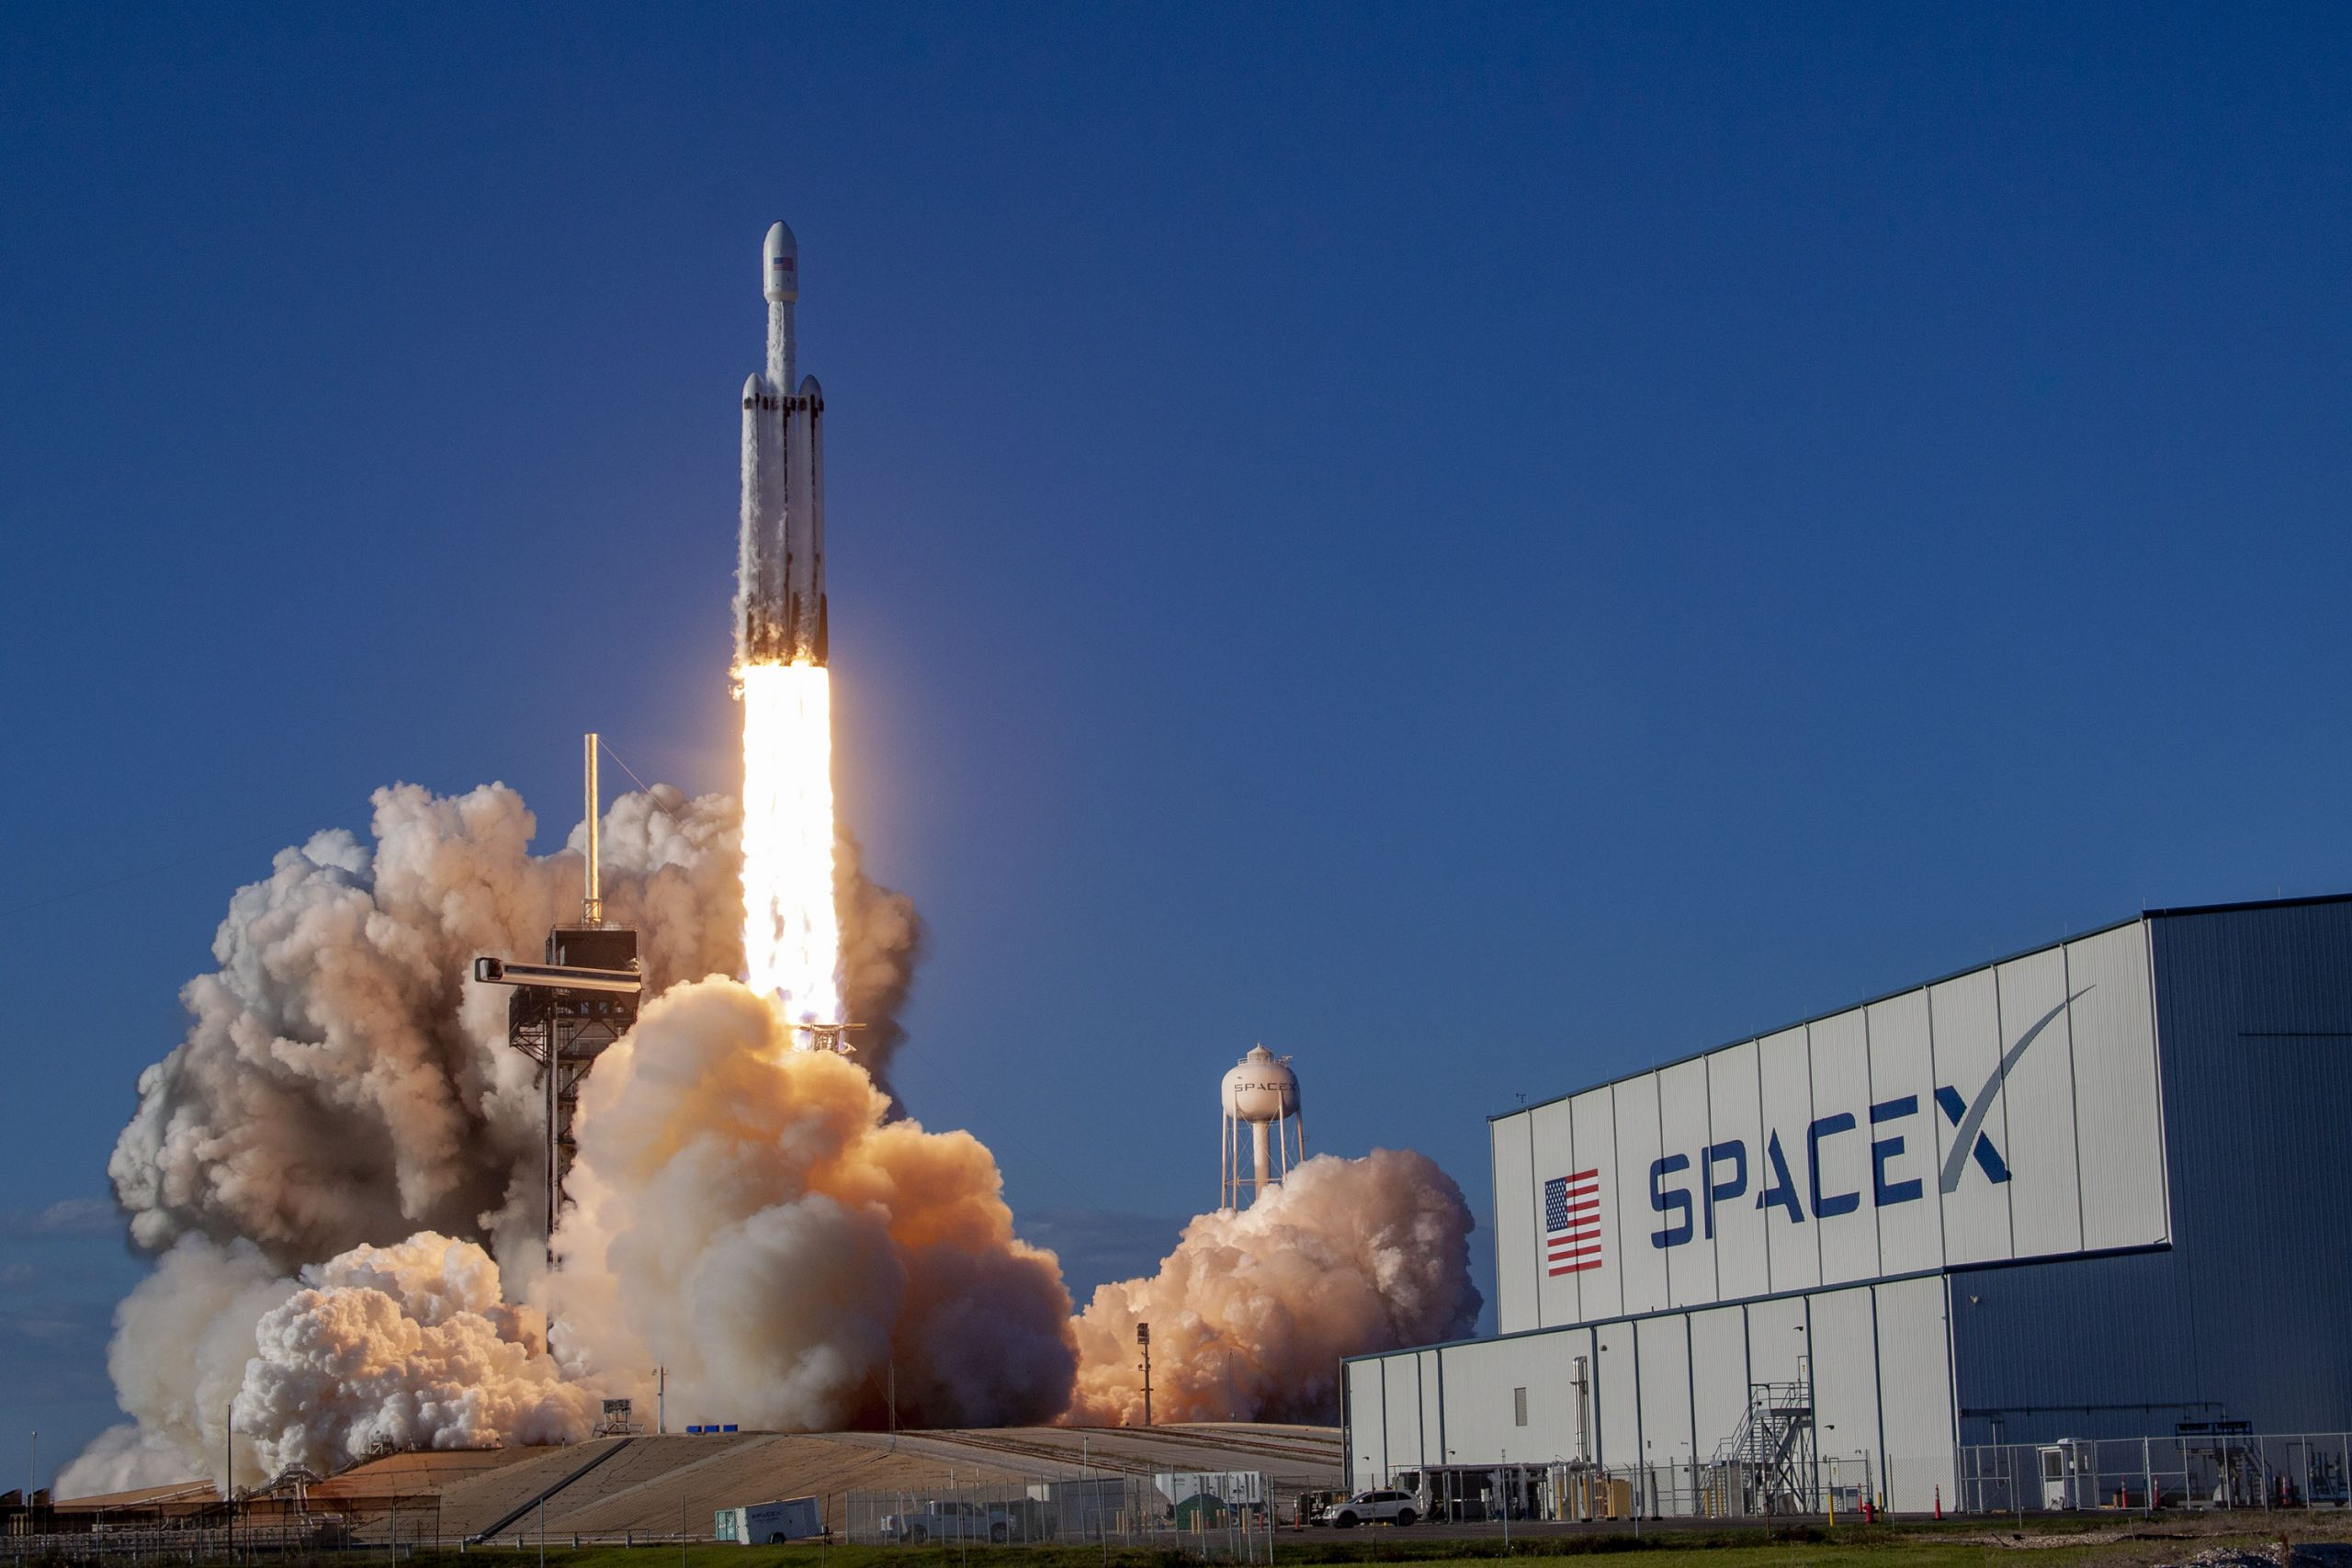 ArabSat-6A satellite launched on a SpaceX' Falcon Heavy rocket